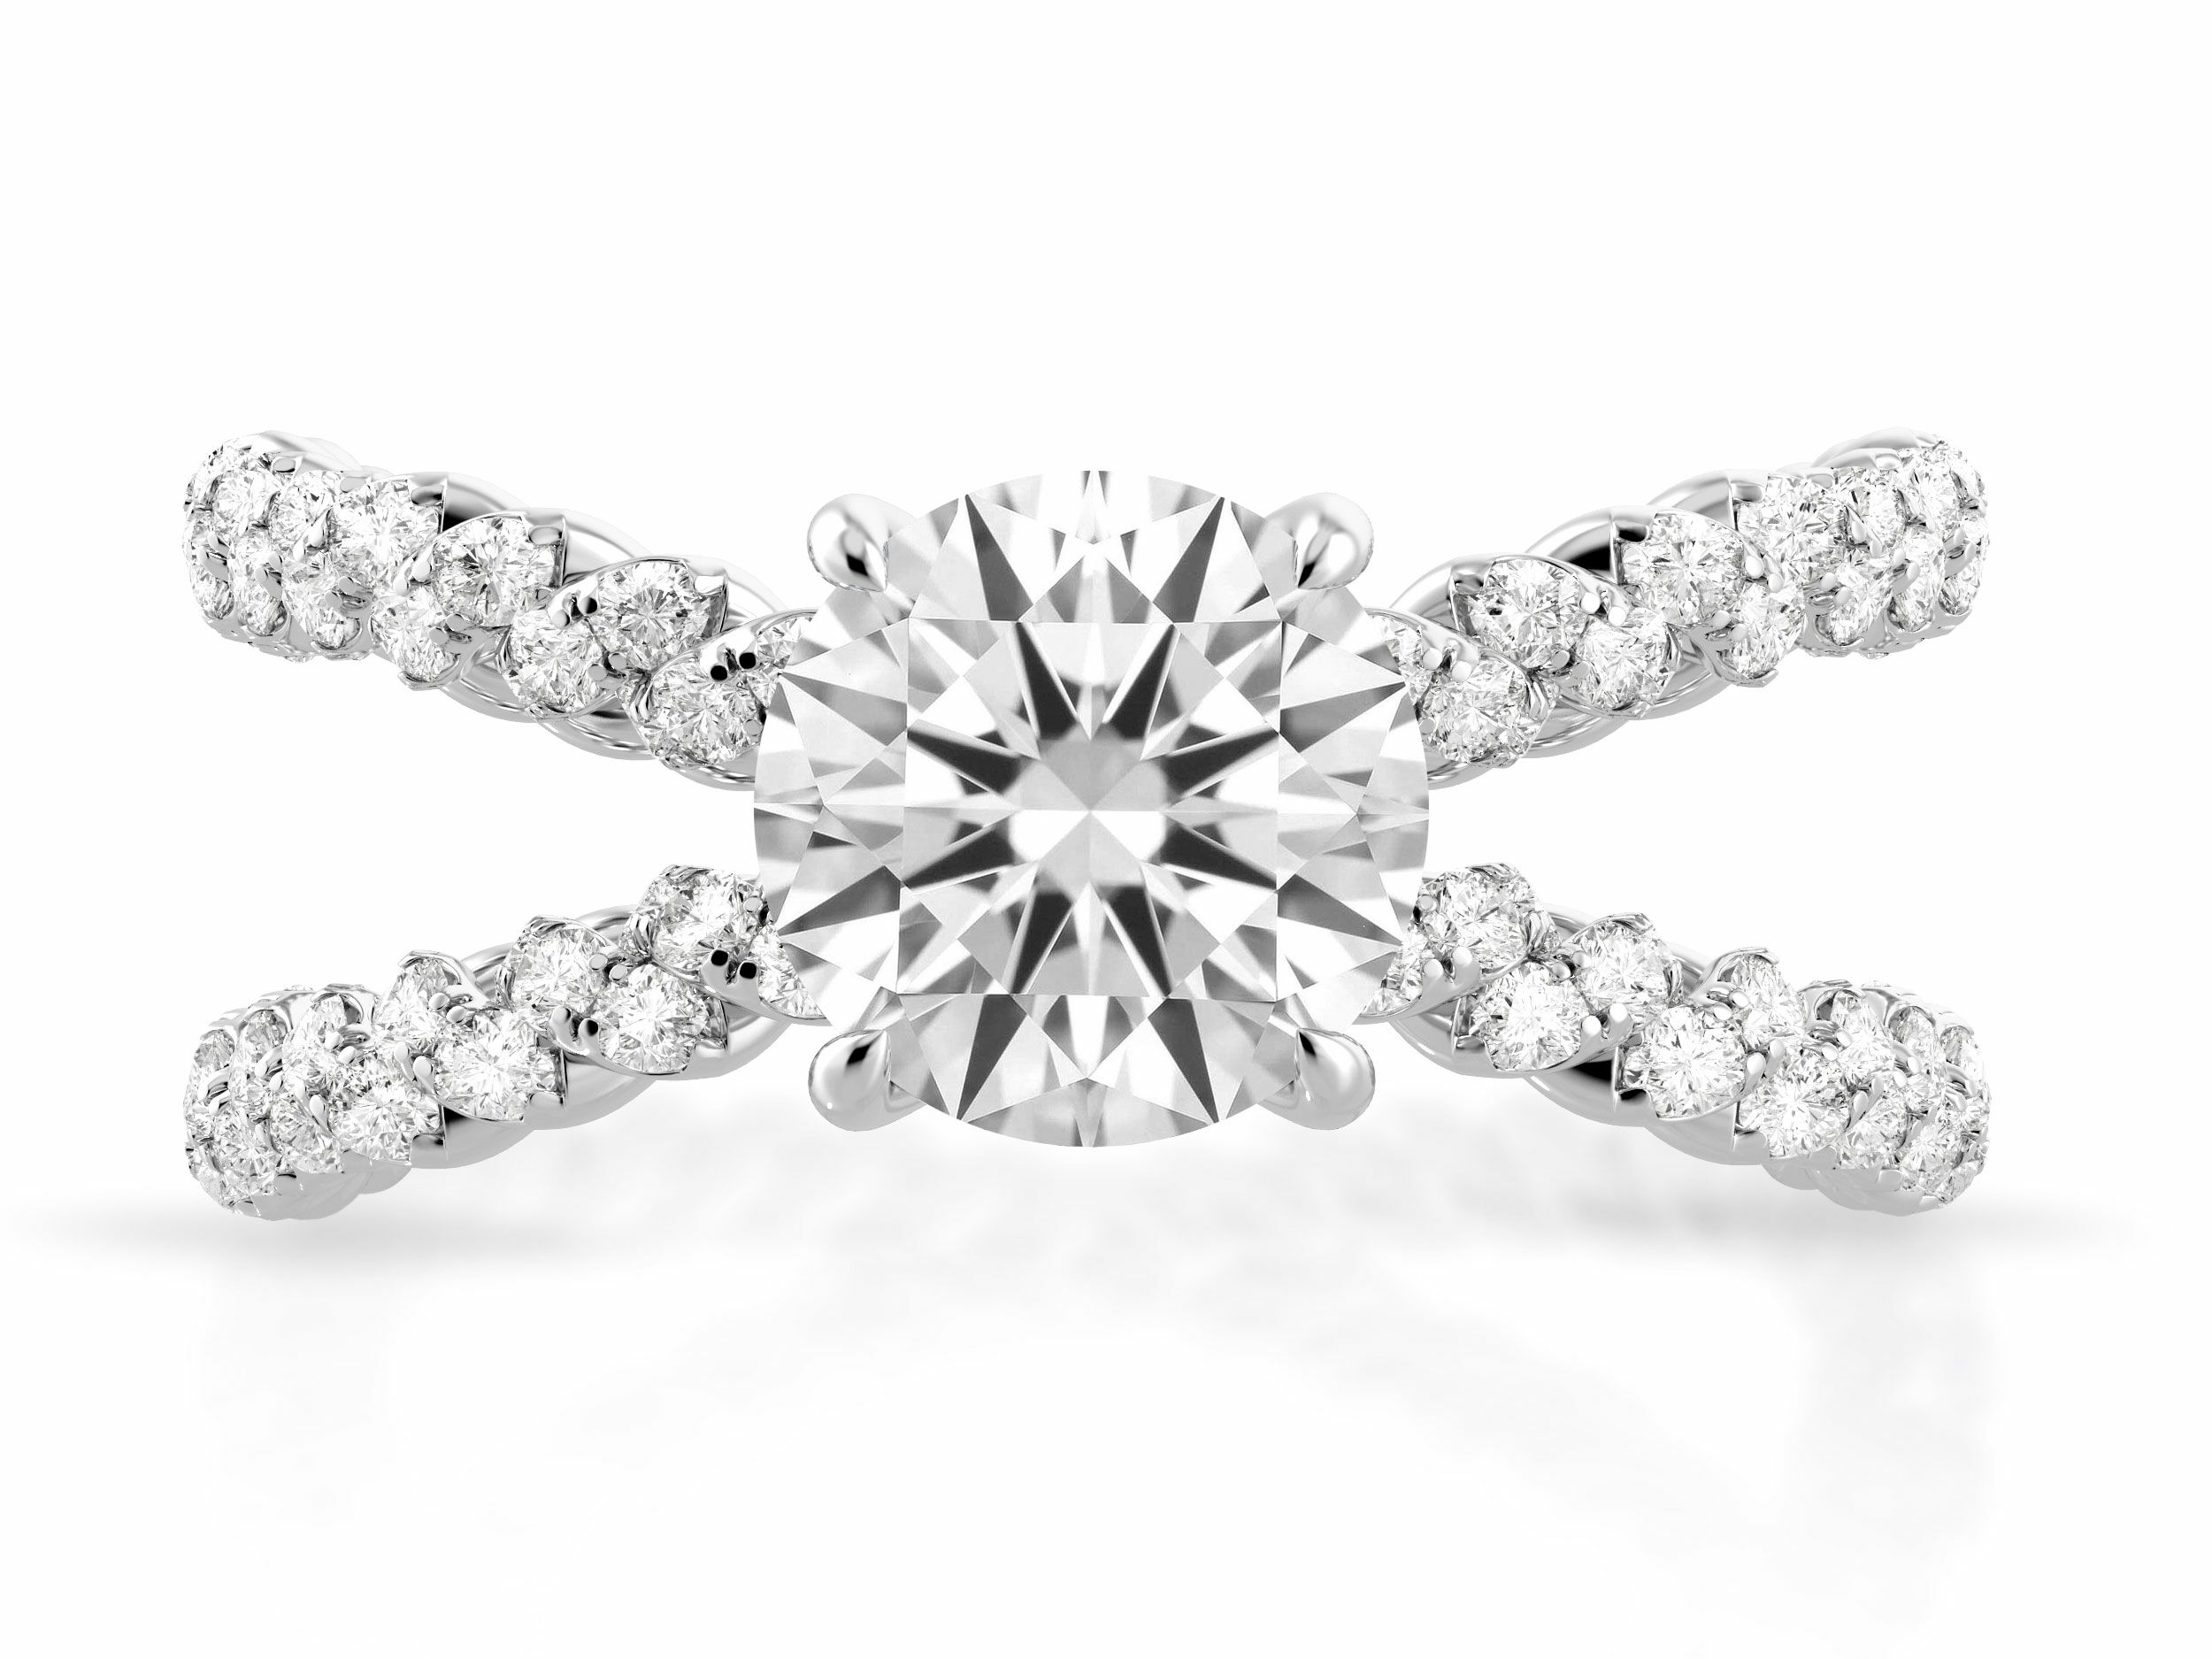 scott index cushion engagement rings kay certified detail description gia diamond authentic ring f